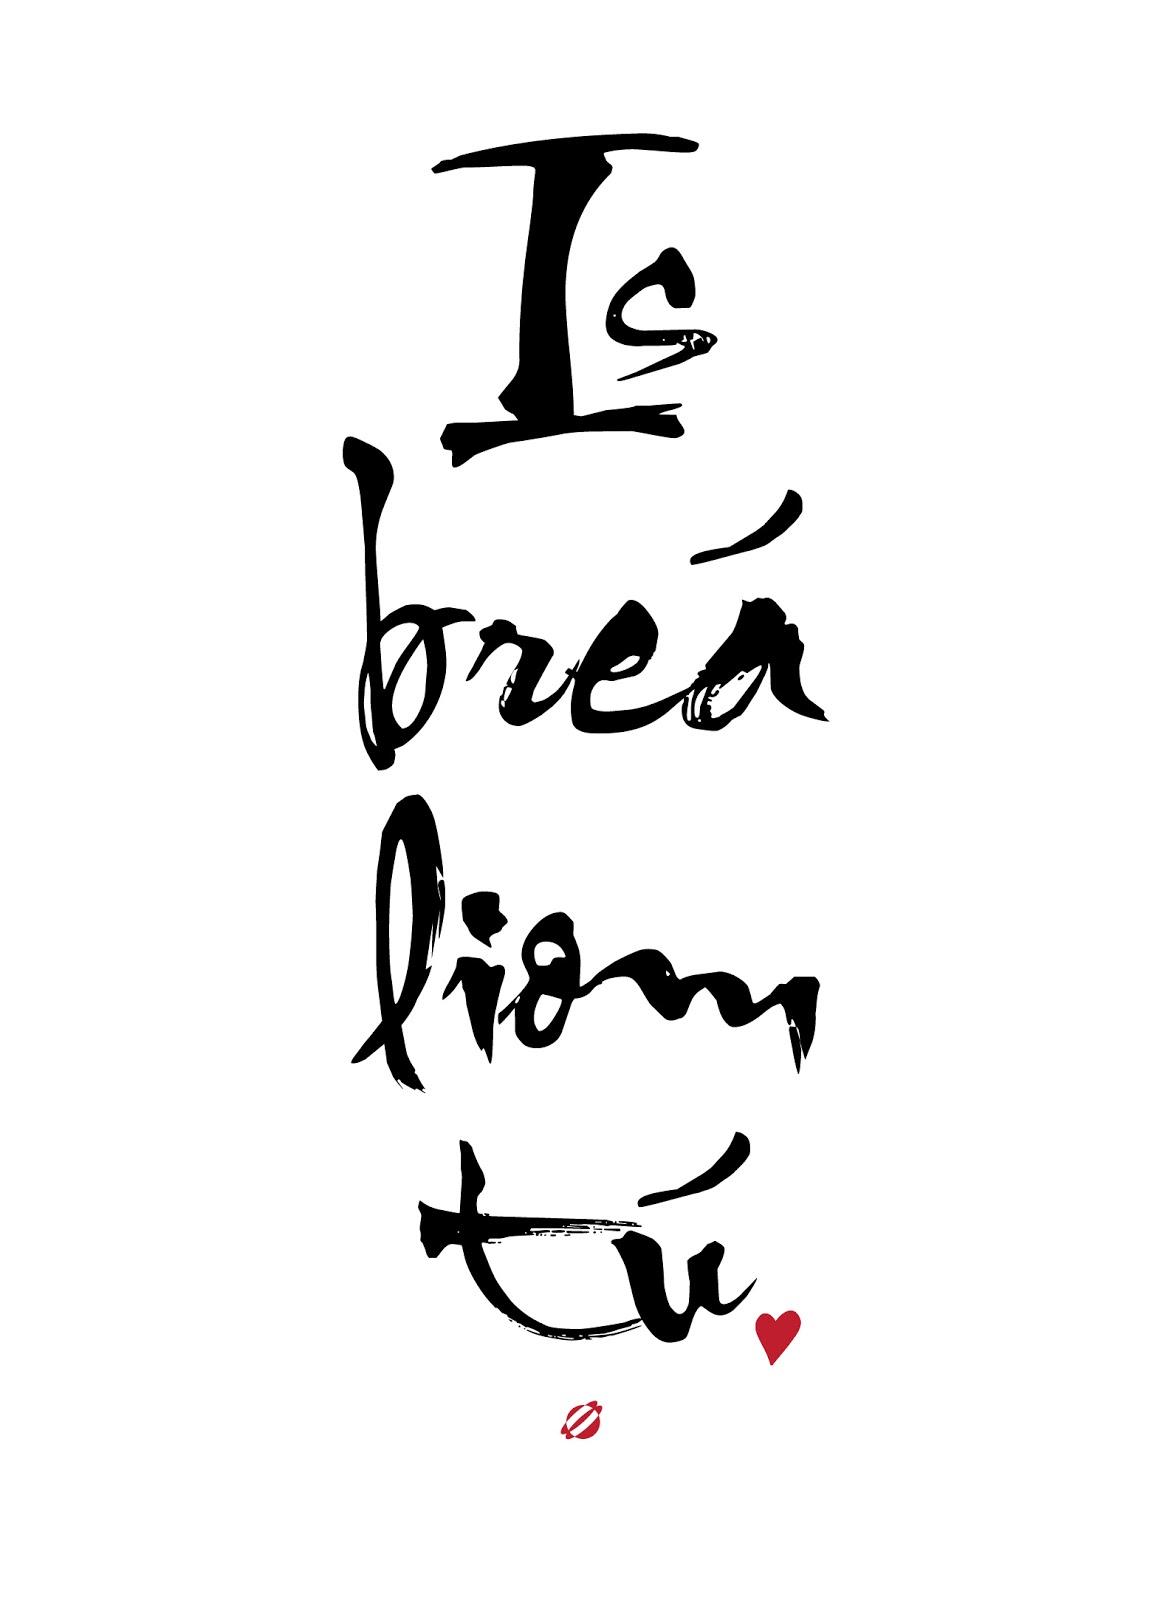 LostBumblebee ©2014 I love you Gaelic Is Brea liom tu- free printable - Personal use only